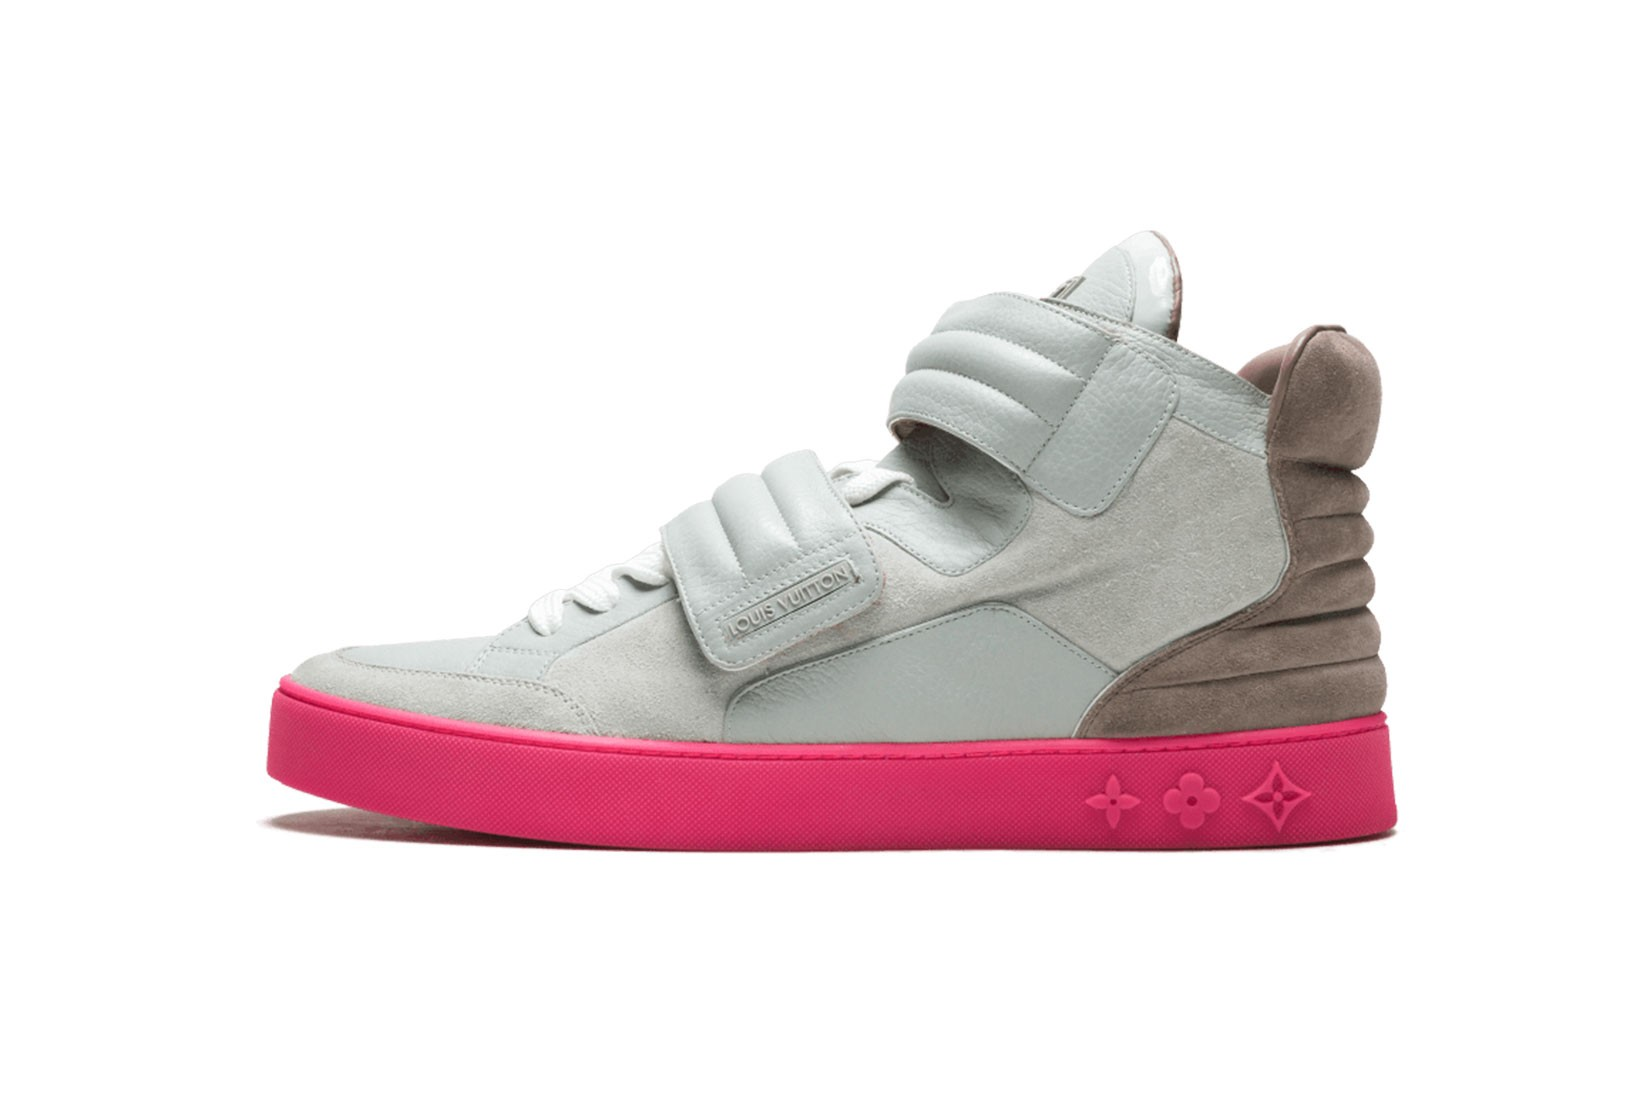 Top 10 Most Valuable Sneakers in the